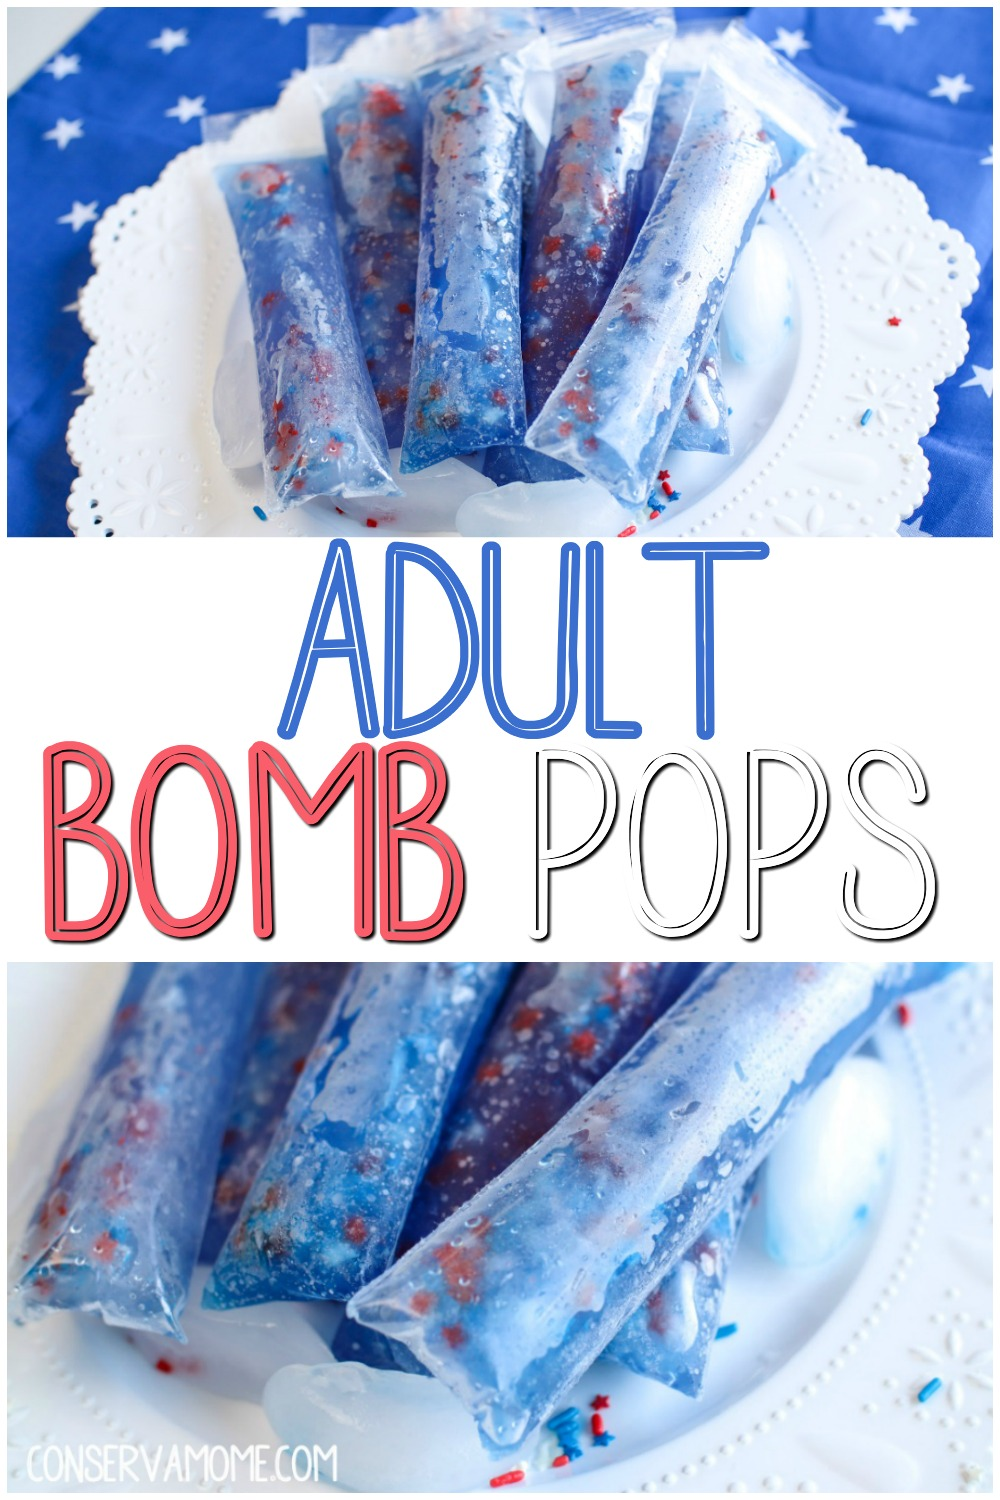 Adult Bomb Pops :An Easy Spiked Freezer pops recipe